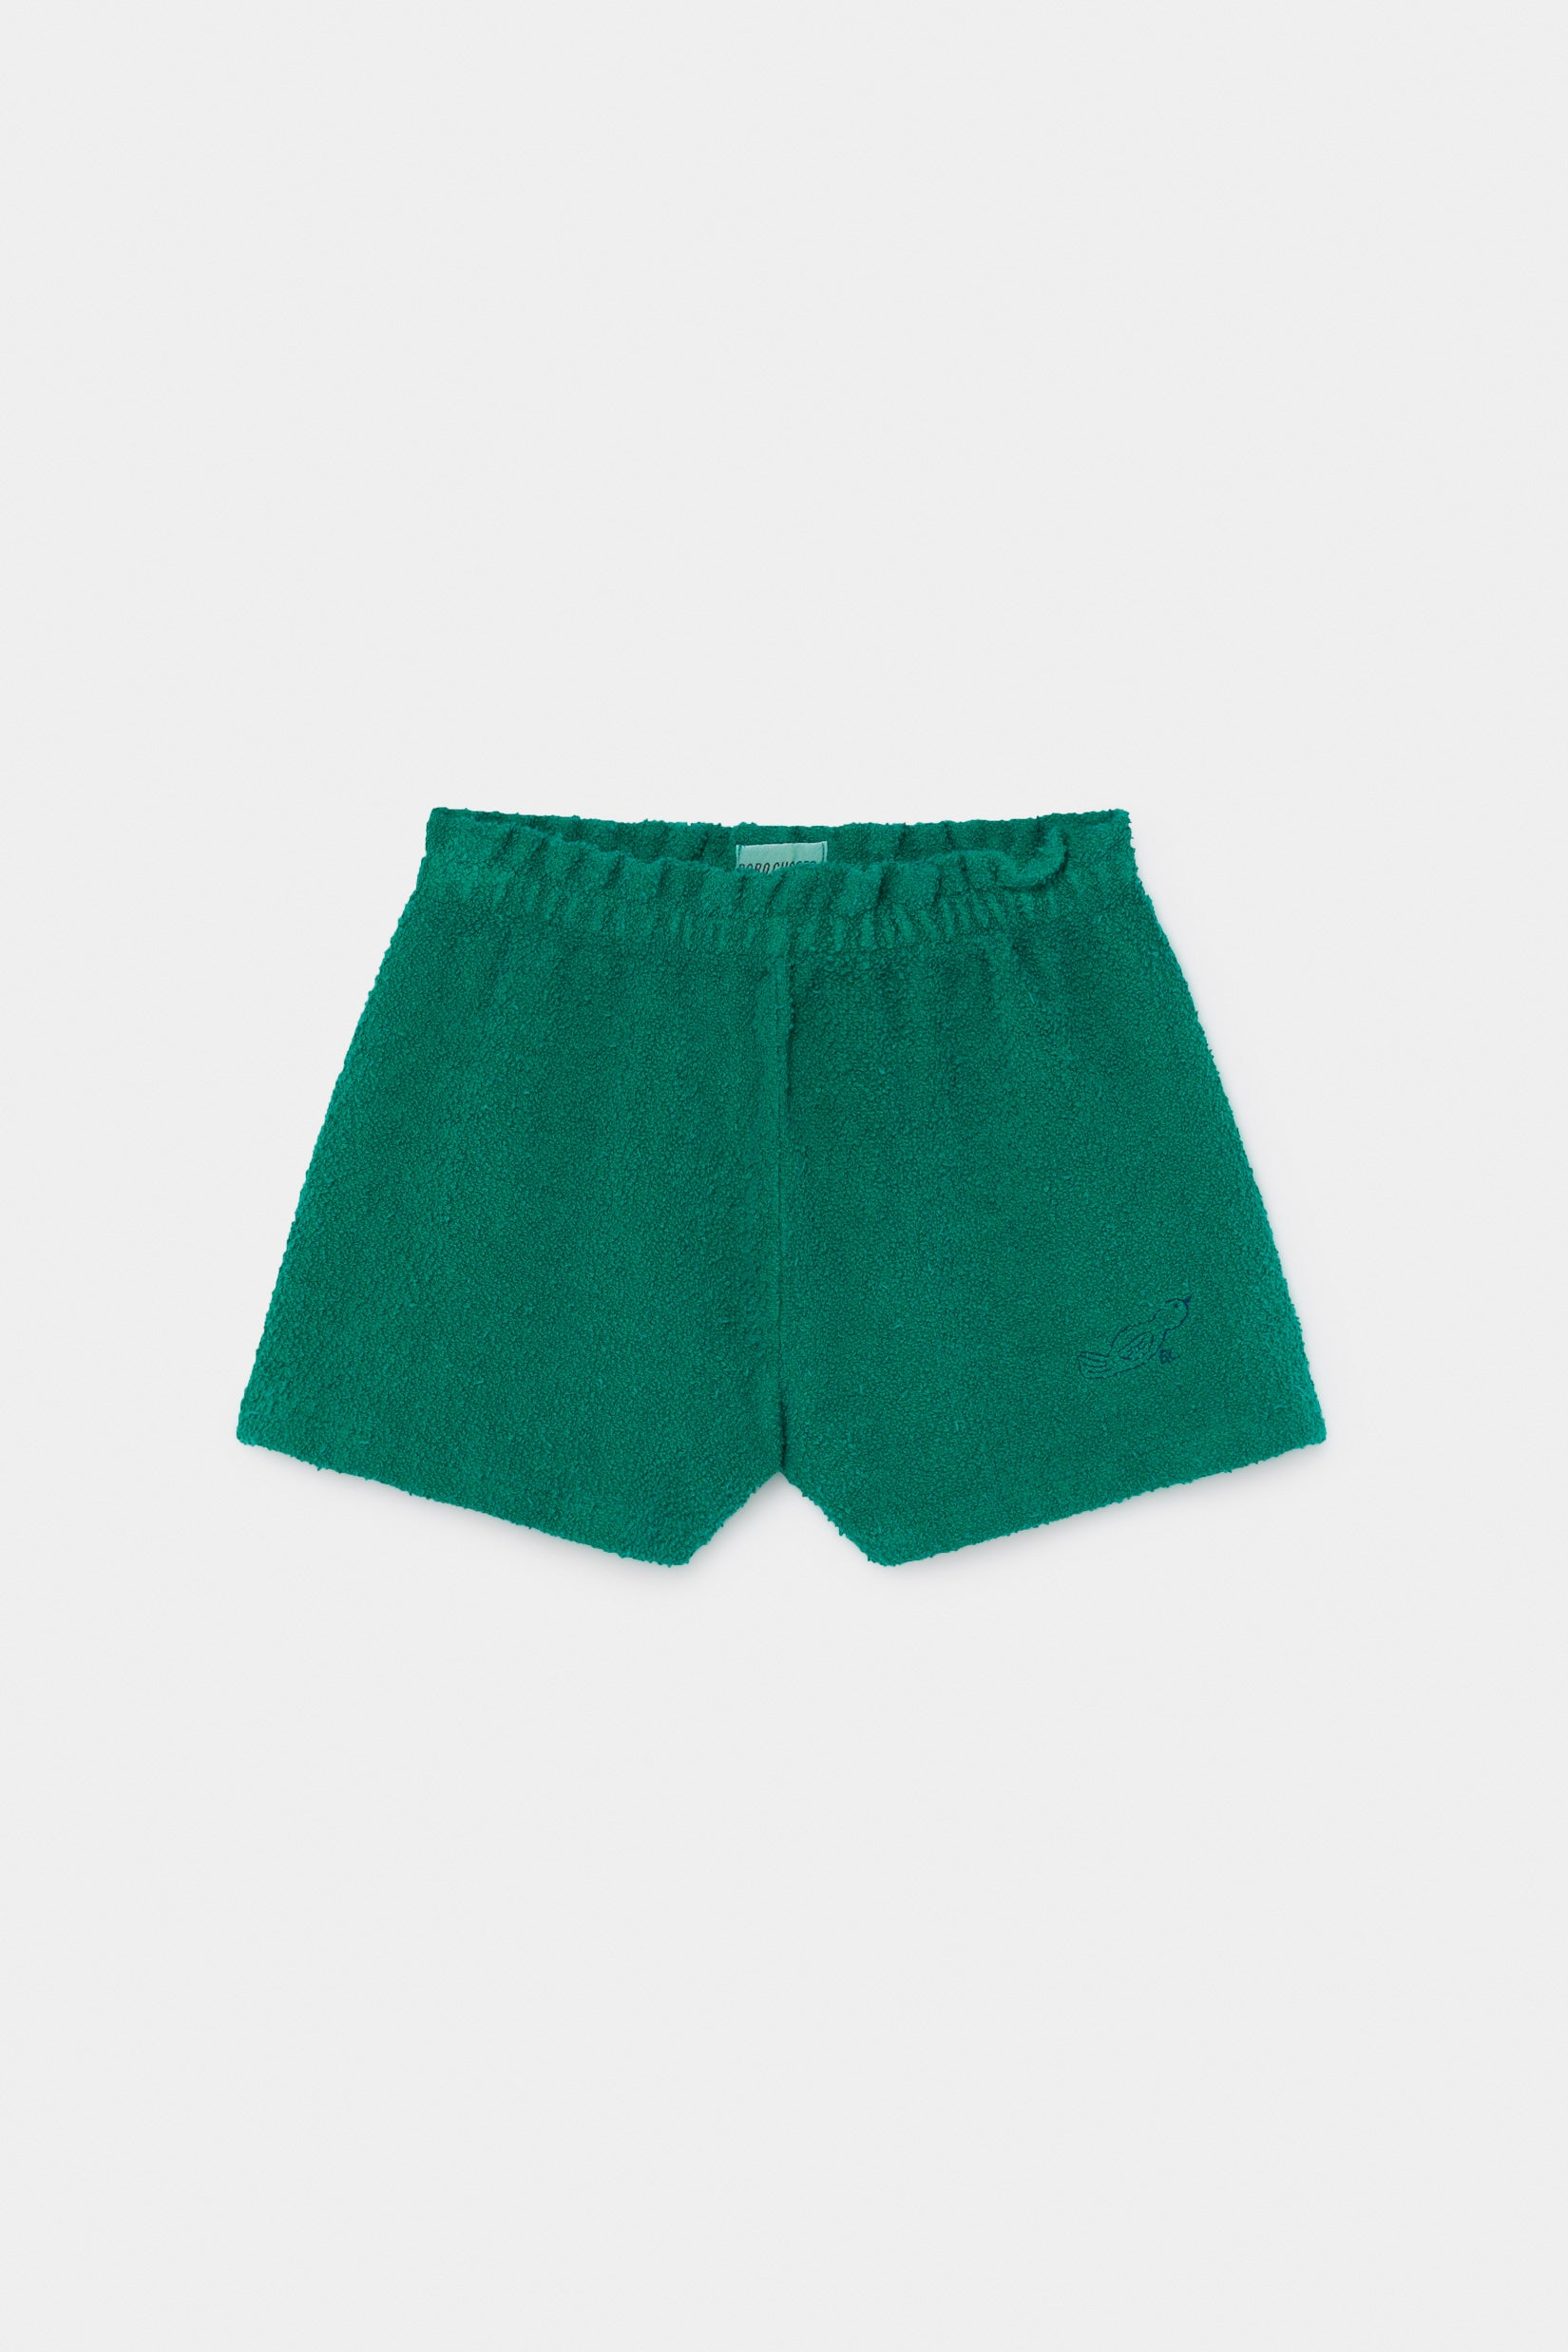 Bobo Choses Green Felpa Shorts